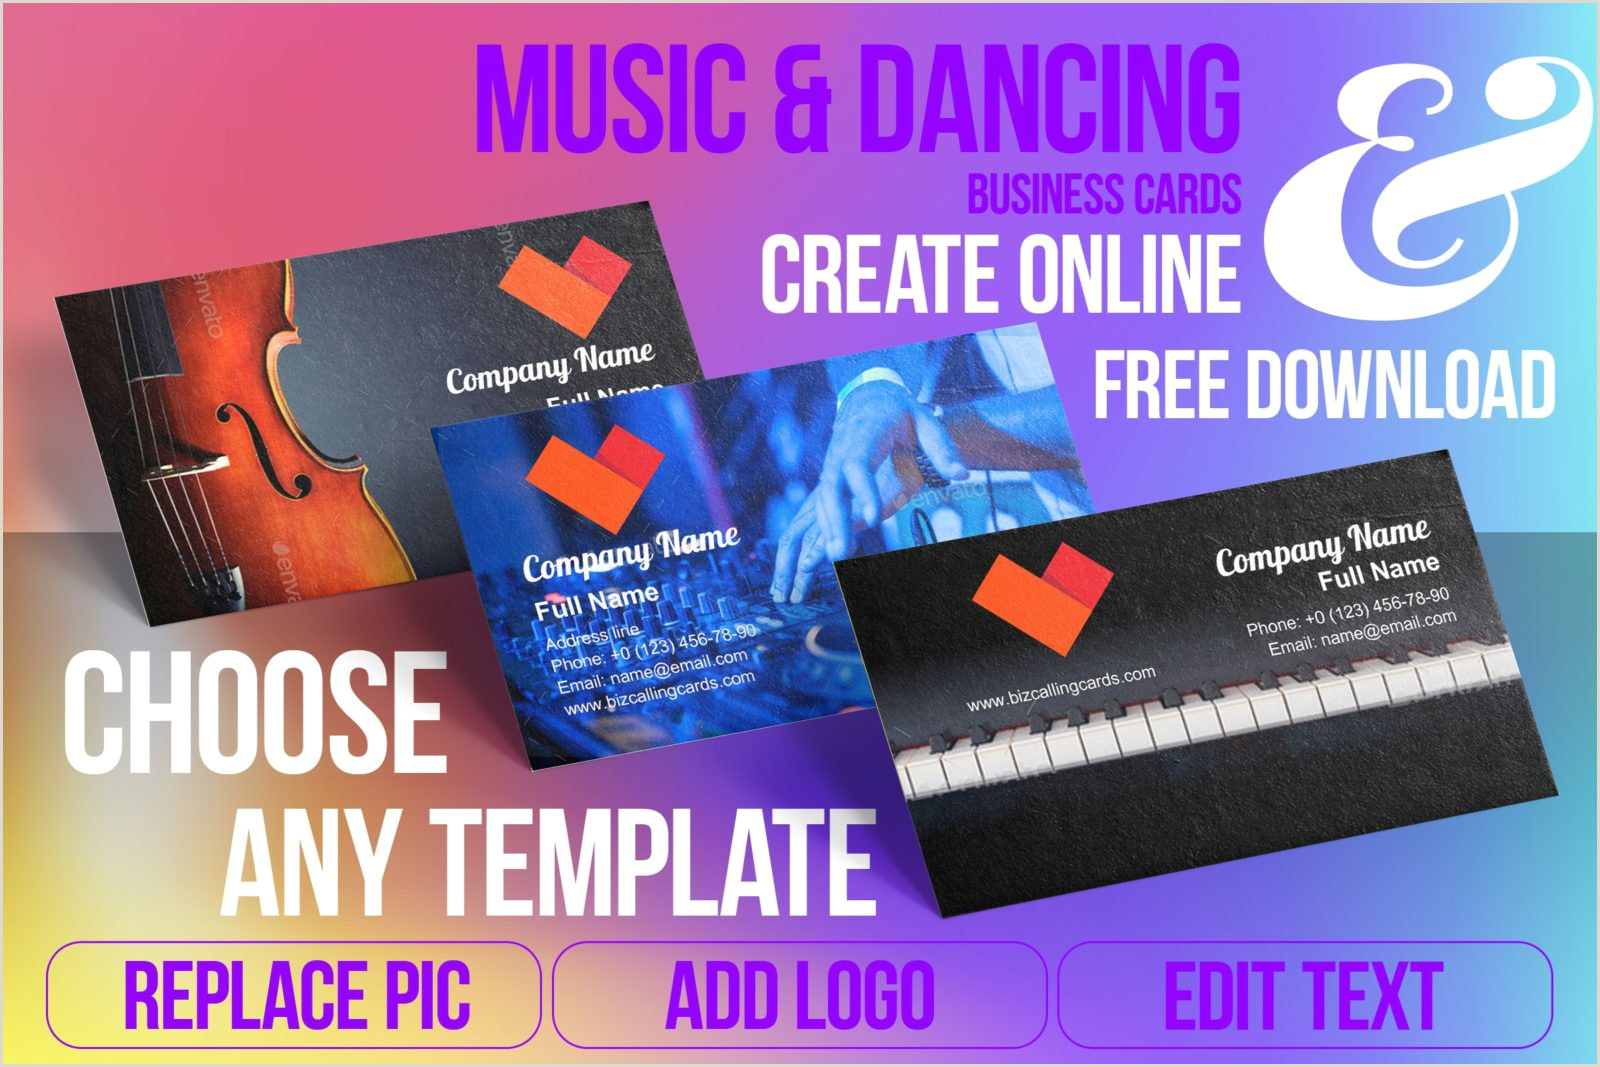 Music Business Card Design ✅ 72 Music & Dancing Business Card Examples